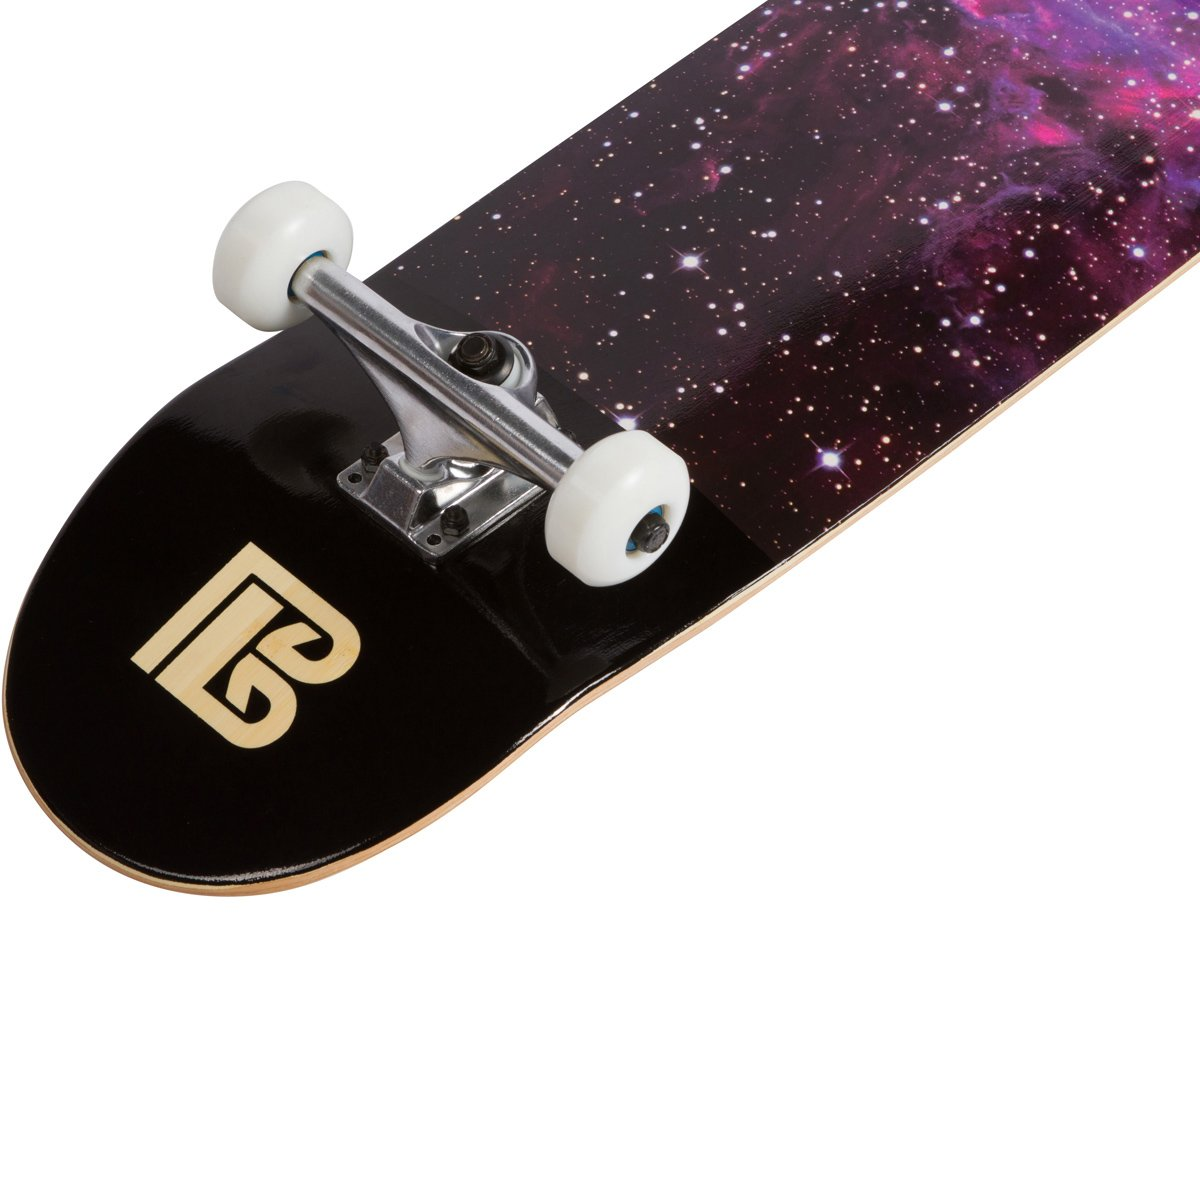 Bamboo Skateboards Graphic Complete  1541771837-123877  - CA 144.54 7e88f7249af